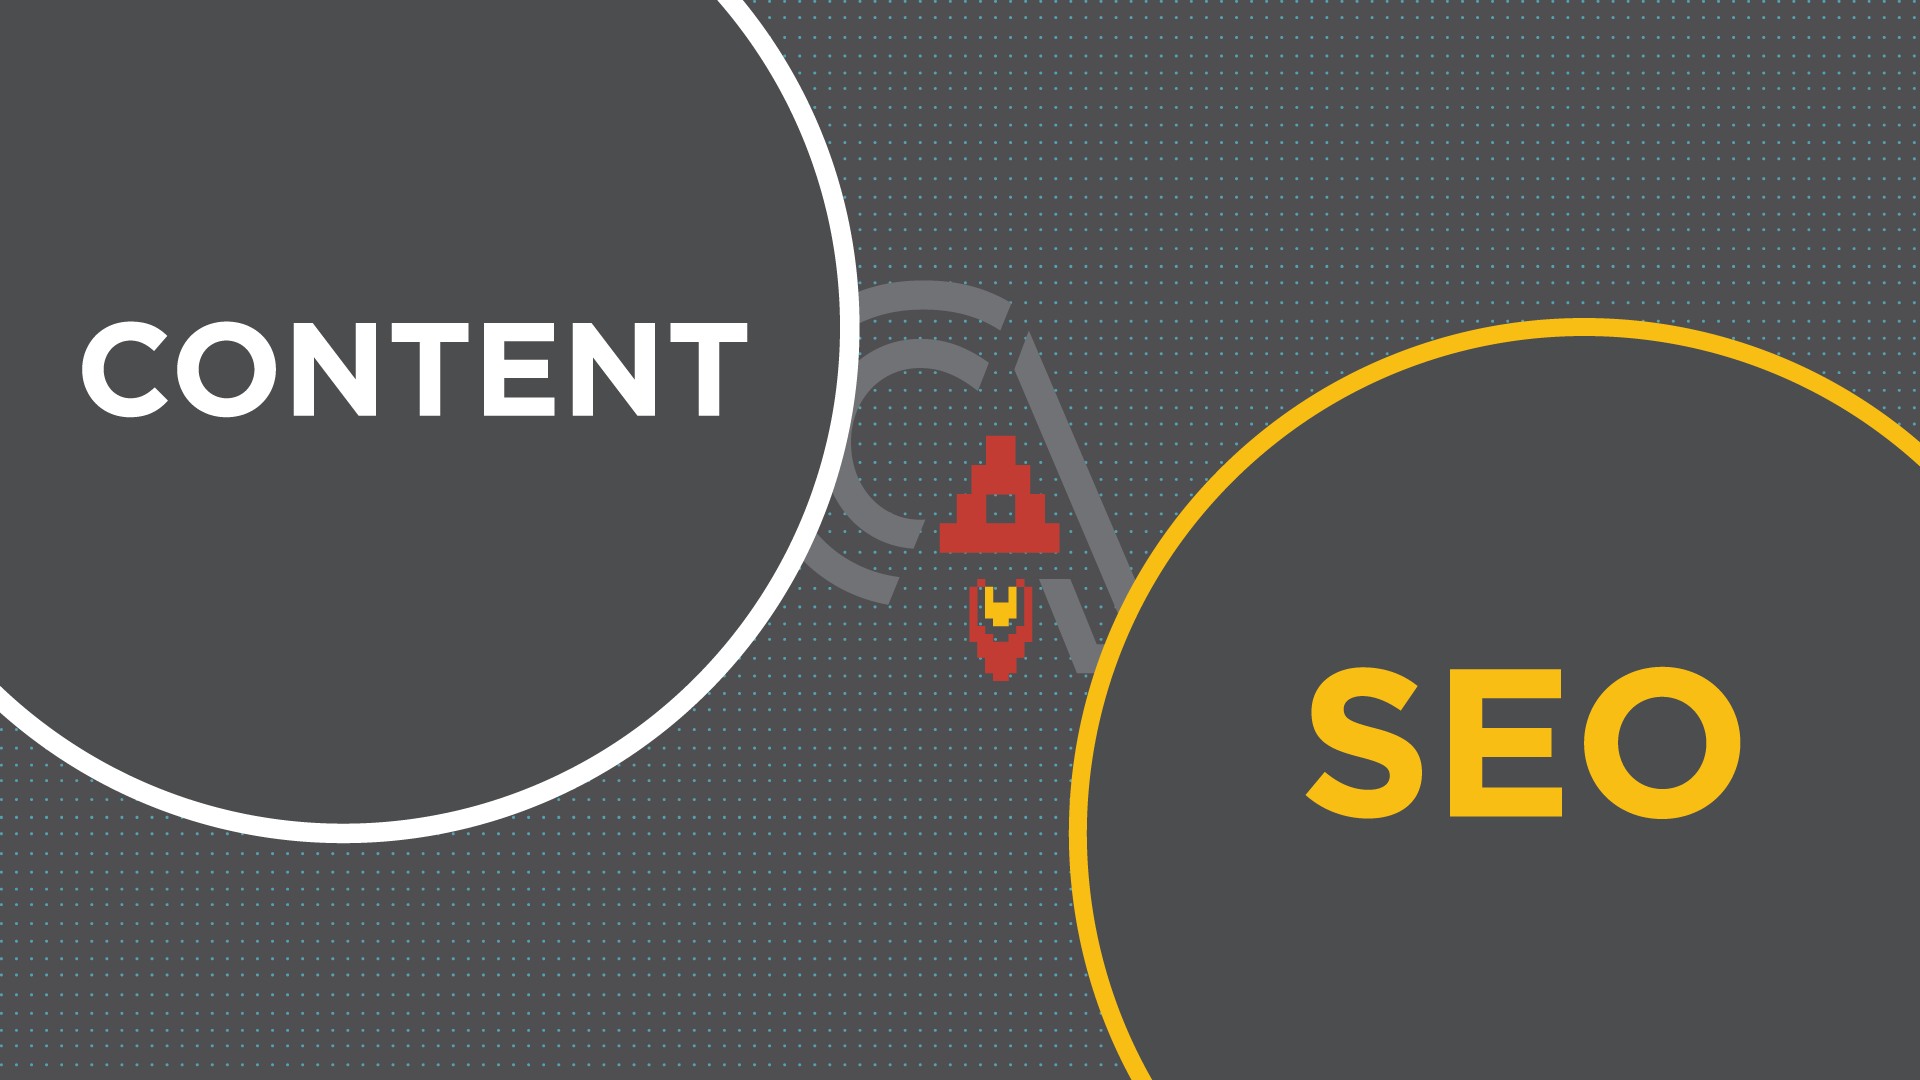 Content Marketing or SEO? Featured Image